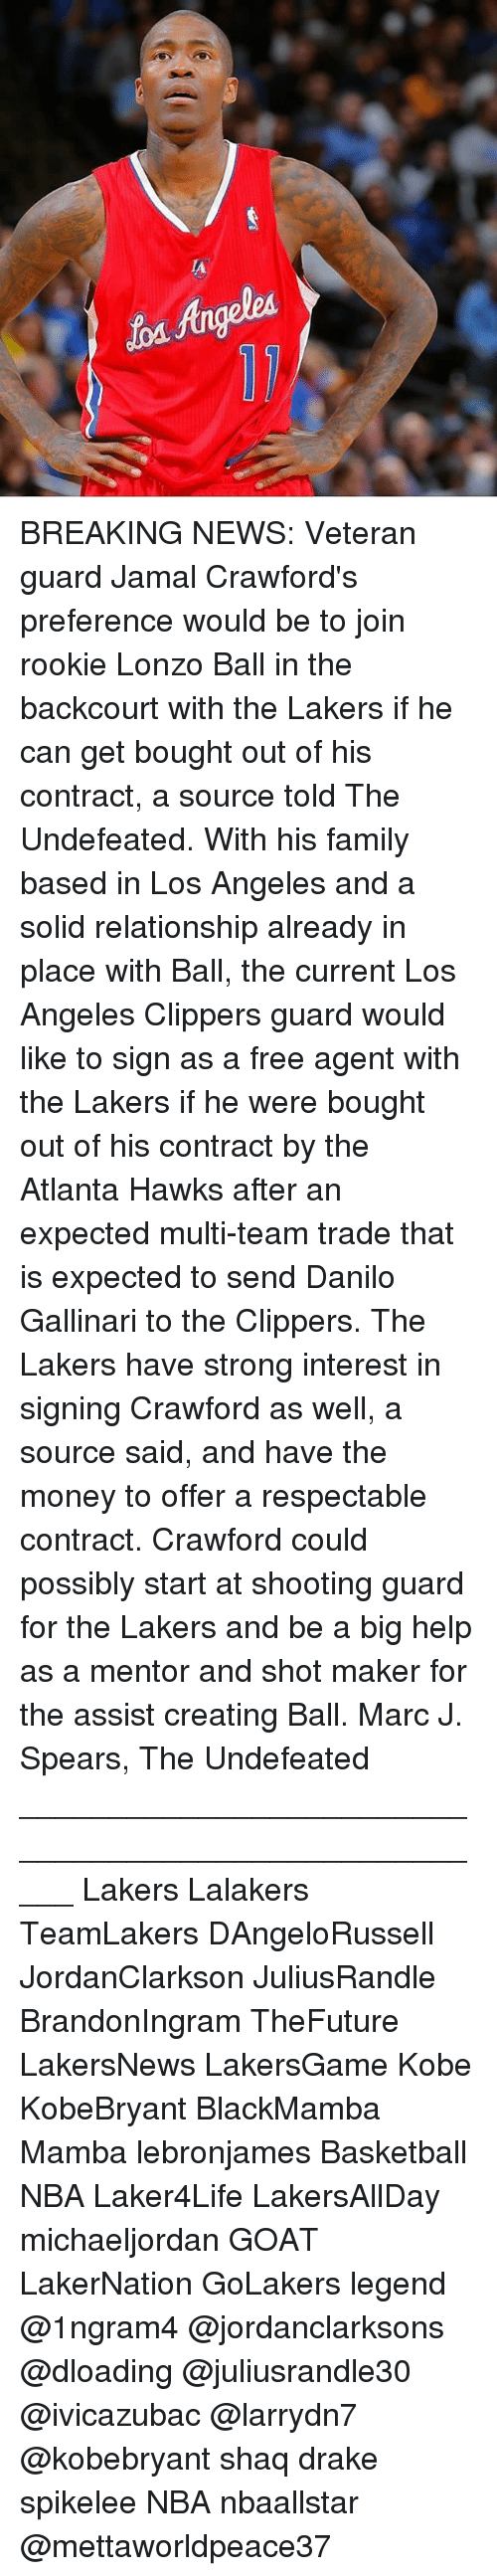 Atlanta Hawks, Basketball, and Drake: BREAKING NEWS: Veteran guard Jamal Crawford's preference would be to join rookie Lonzo Ball in the backcourt with the Lakers if he can get bought out of his contract, a source told The Undefeated. With his family based in Los Angeles and a solid relationship already in place with Ball, the current Los Angeles Clippers guard would like to sign as a free agent with the Lakers if he were bought out of his contract by the Atlanta Hawks after an expected multi-team trade that is expected to send Danilo Gallinari to the Clippers. The Lakers have strong interest in signing Crawford as well, a source said, and have the money to offer a respectable contract. Crawford could possibly start at shooting guard for the Lakers and be a big help as a mentor and shot maker for the assist creating Ball. Marc J. Spears, The Undefeated _____________________________________________________ Lakers Lalakers TeamLakers DAngeloRussell JordanClarkson JuliusRandle BrandonIngram TheFuture LakersNews LakersGame Kobe KobeBryant BlackMamba Mamba lebronjames Basketball NBA Laker4Life LakersAllDay michaeljordan GOAT LakerNation GoLakers legend @1ngram4 @jordanclarksons @dloading @juliusrandle30 @ivicazubac @larrydn7 @kobebryant shaq drake spikelee NBA nbaallstar @mettaworldpeace37